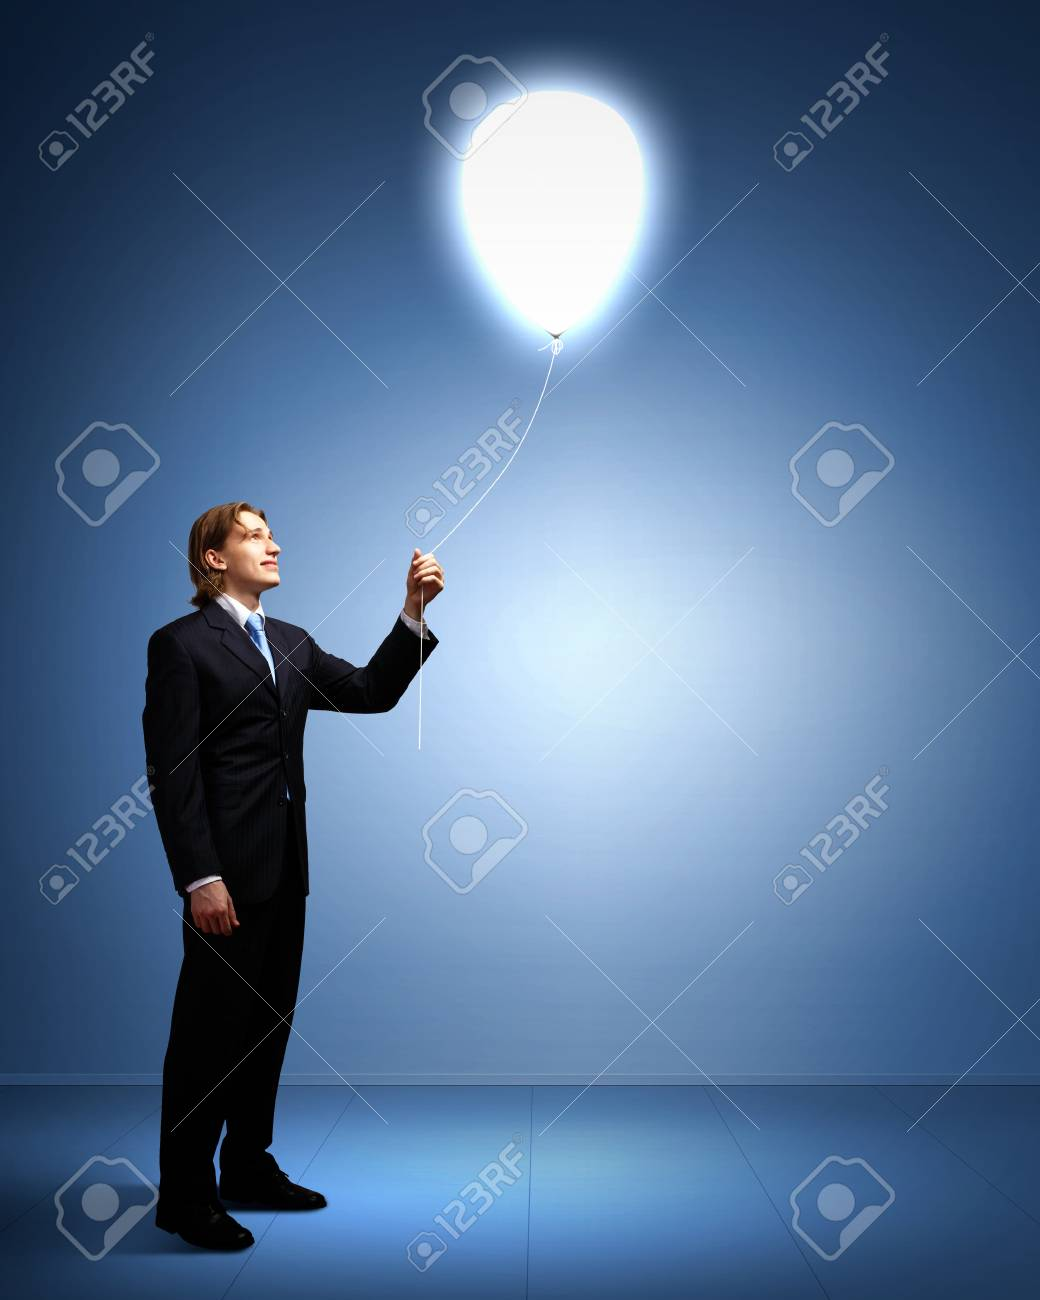 Light bulb and a business person as symbols of creativity in business Stock Photo - 14080545